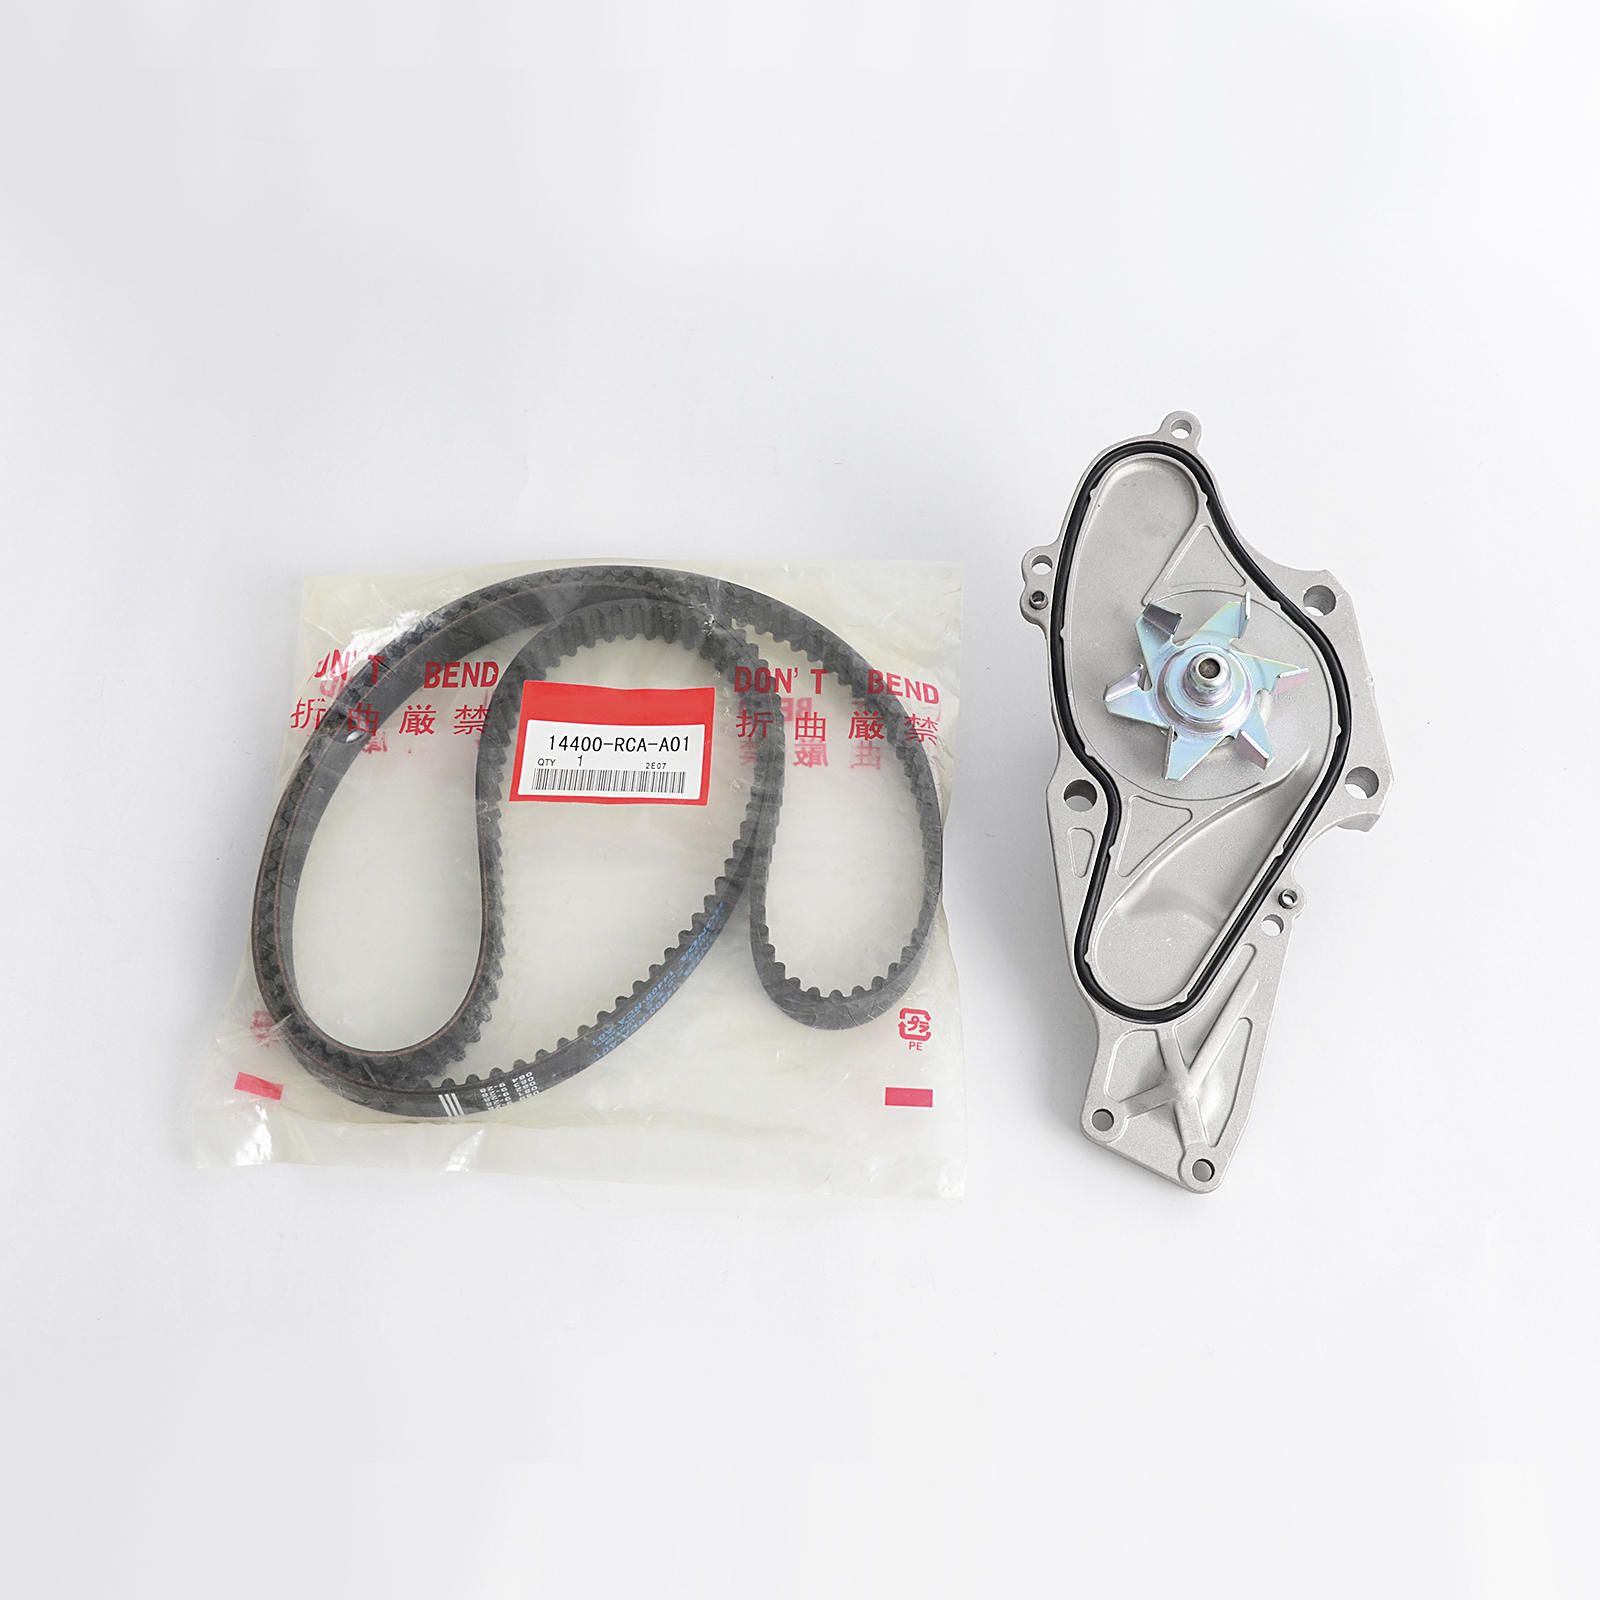 GENUINE/OEM TIMING BELT & WATER PUMP KIT FOR HONDA/ACURA